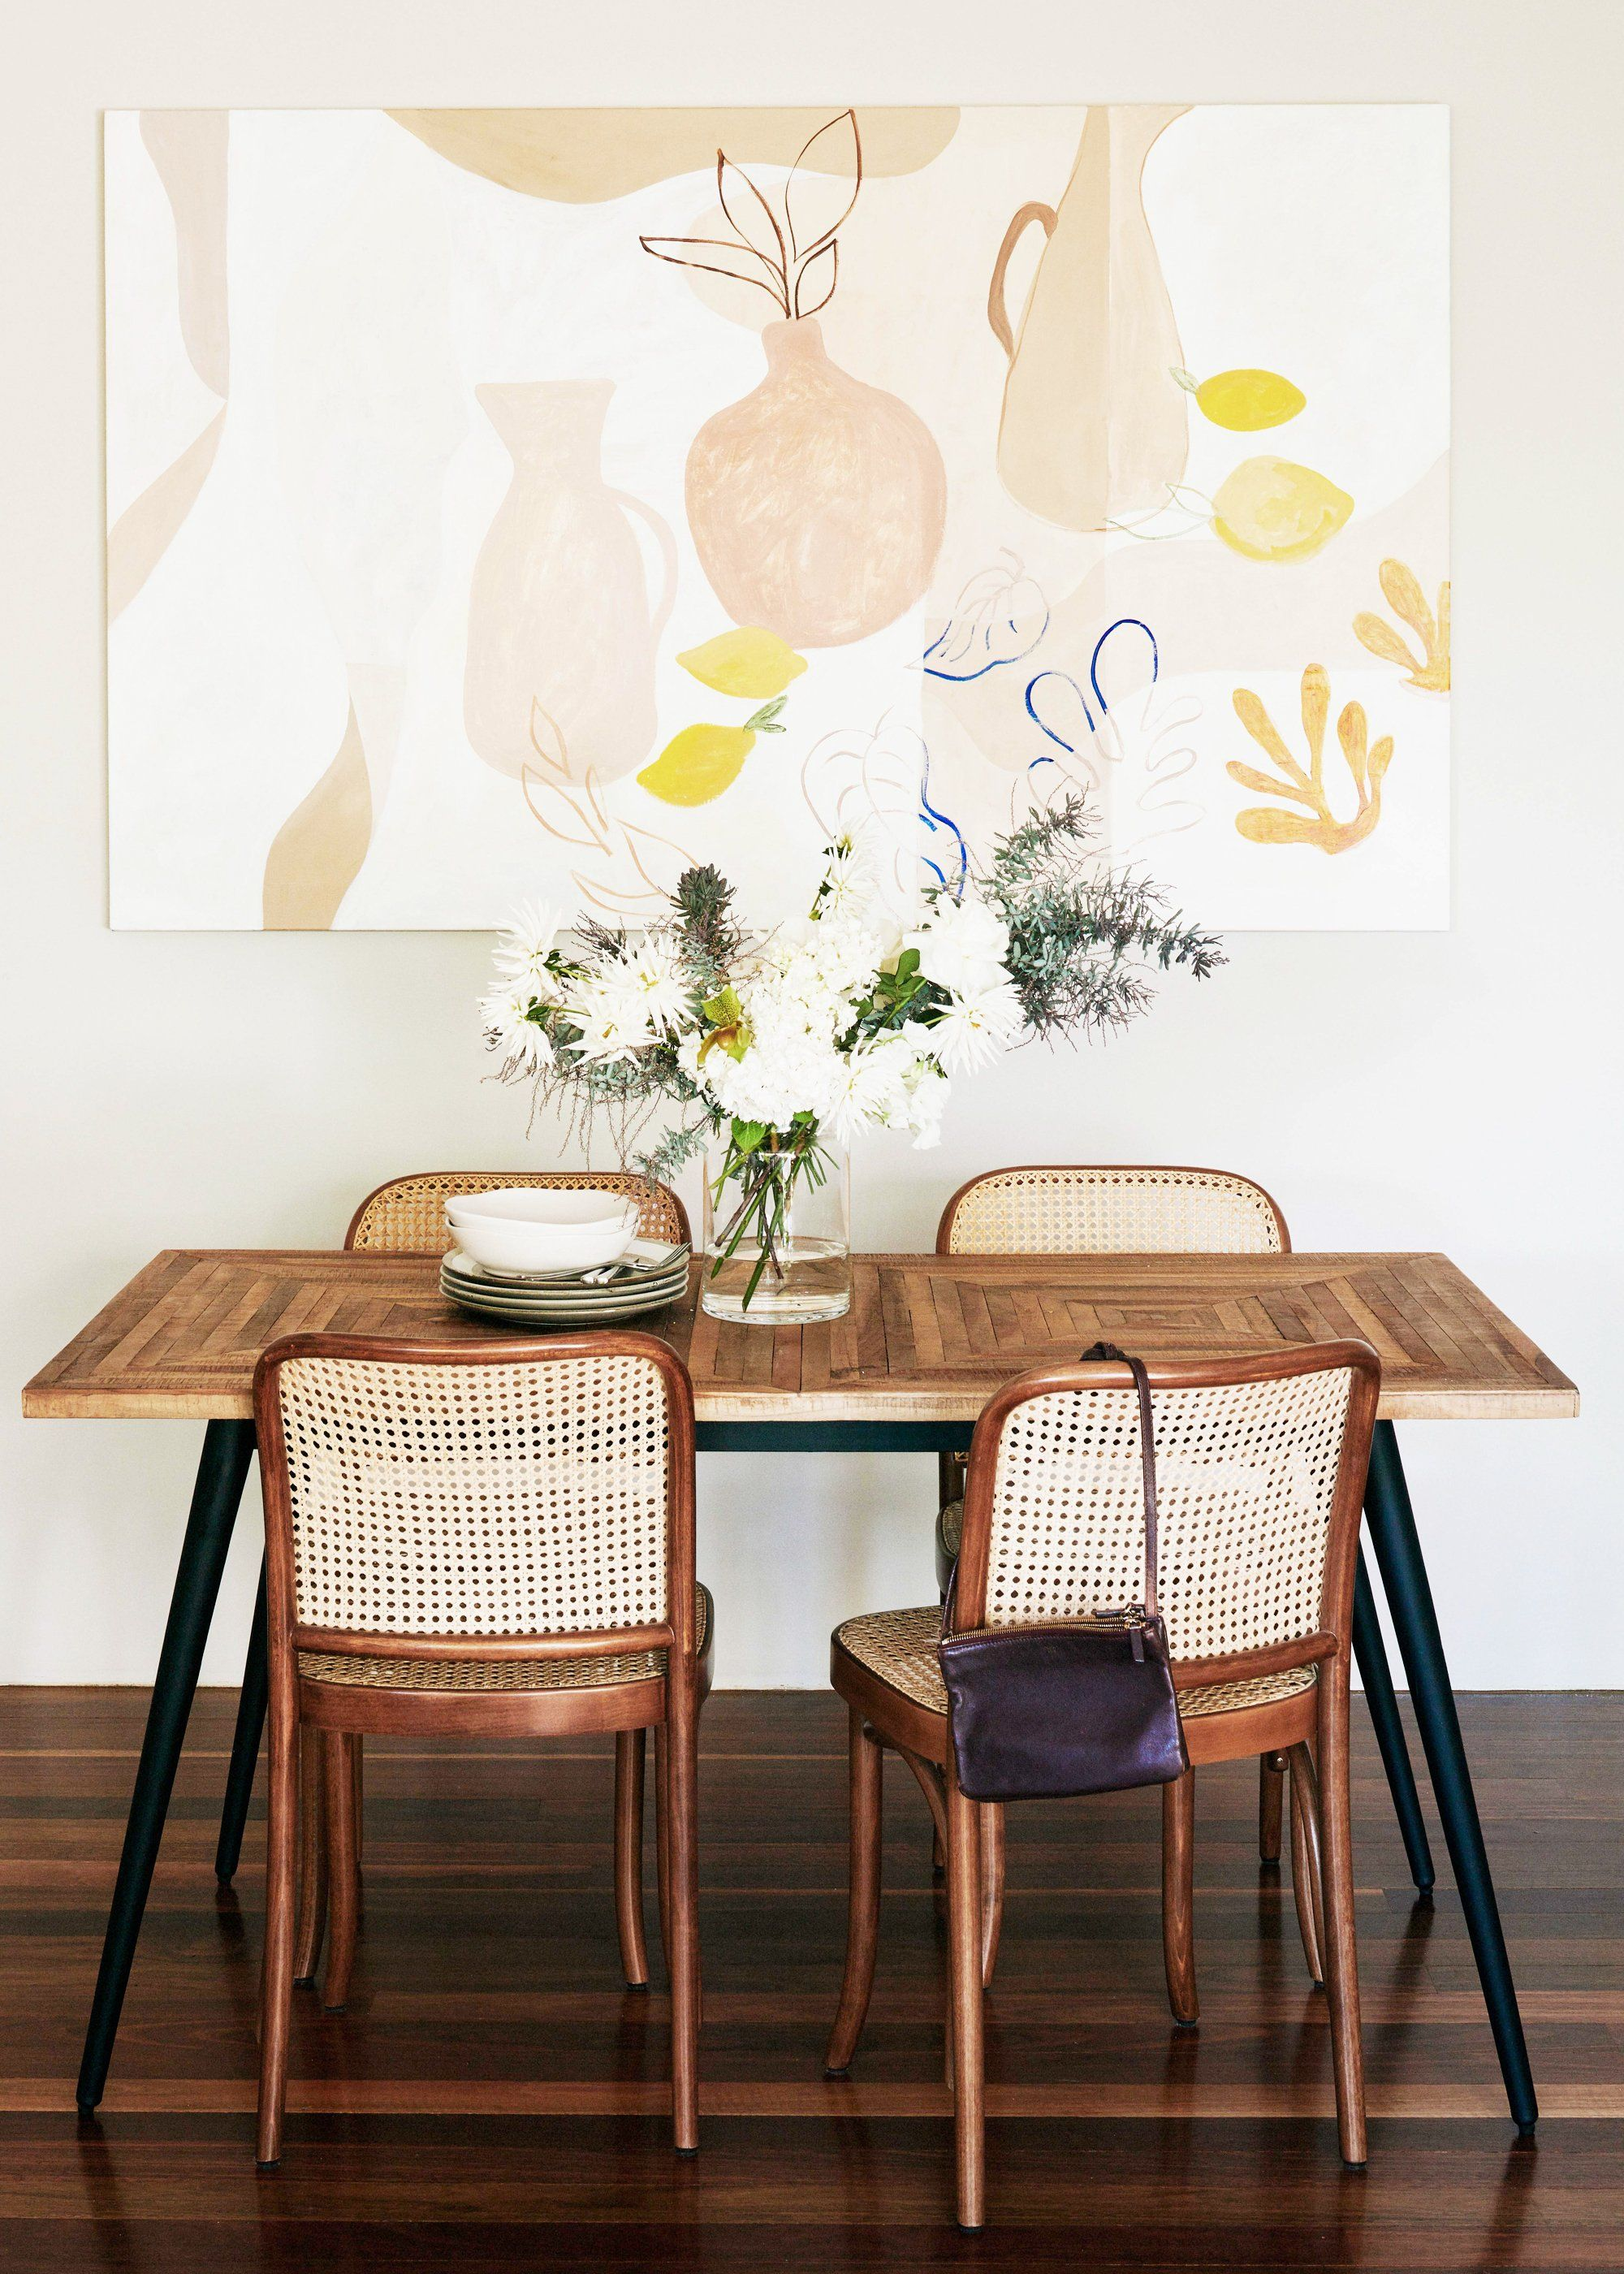 Transform Your Tiny Dining Room Into an Entertaine